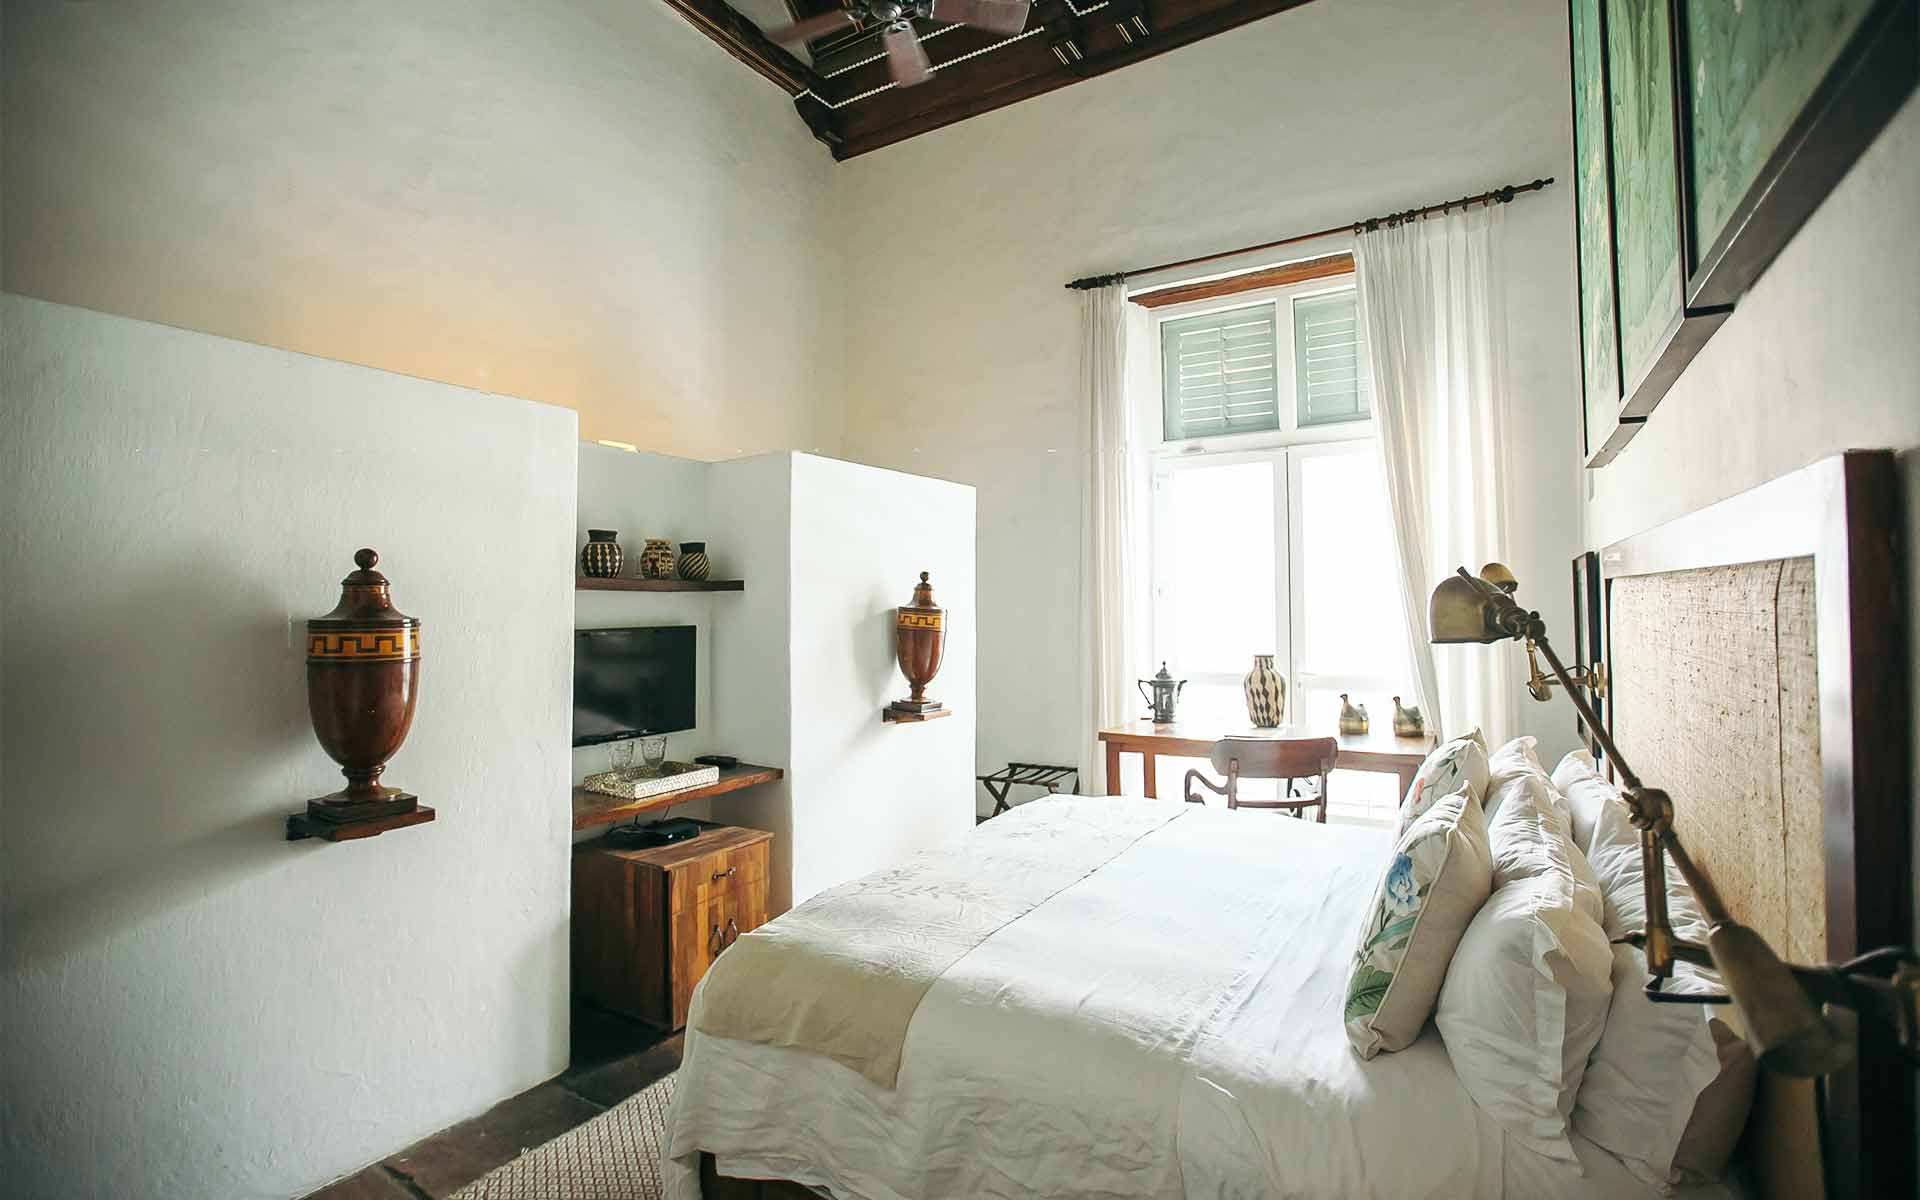 Macaw bedroom at the Amarla Boutique Hotel in Cartagena